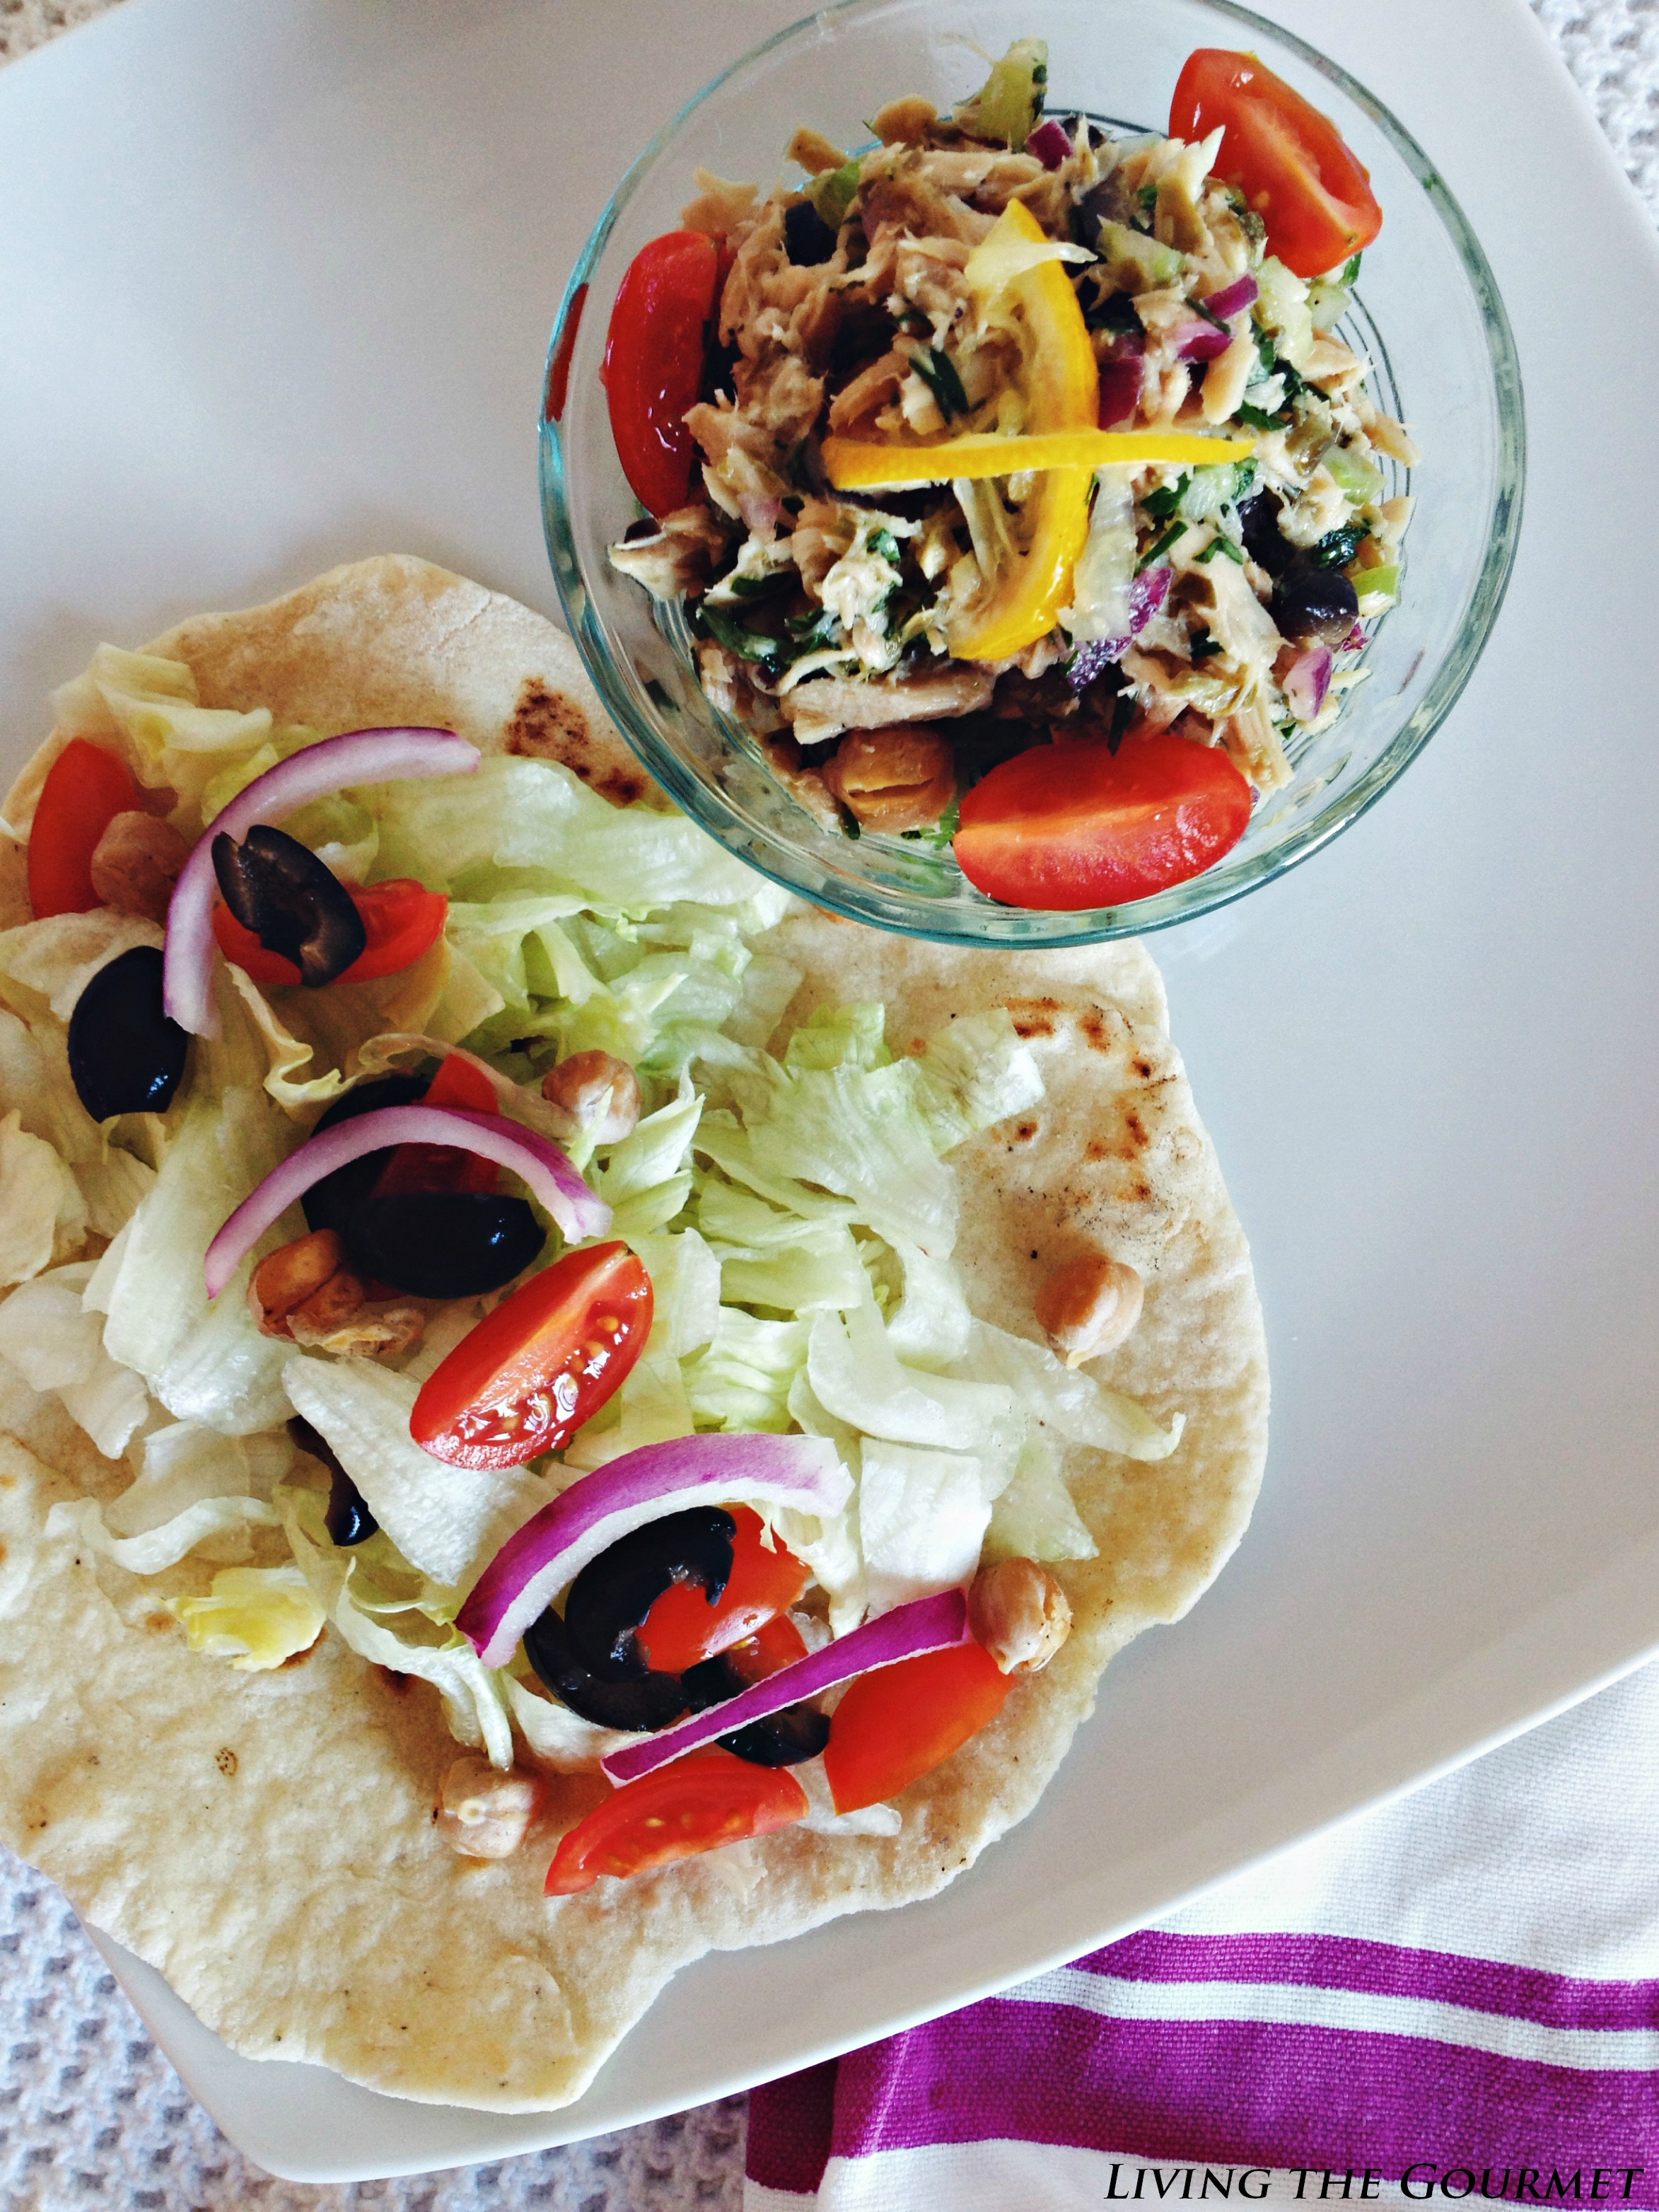 Living the Gourmet: Bumble Beed - New Year, New You / Healthy Tuna Salad w/ Fresh Flatbread